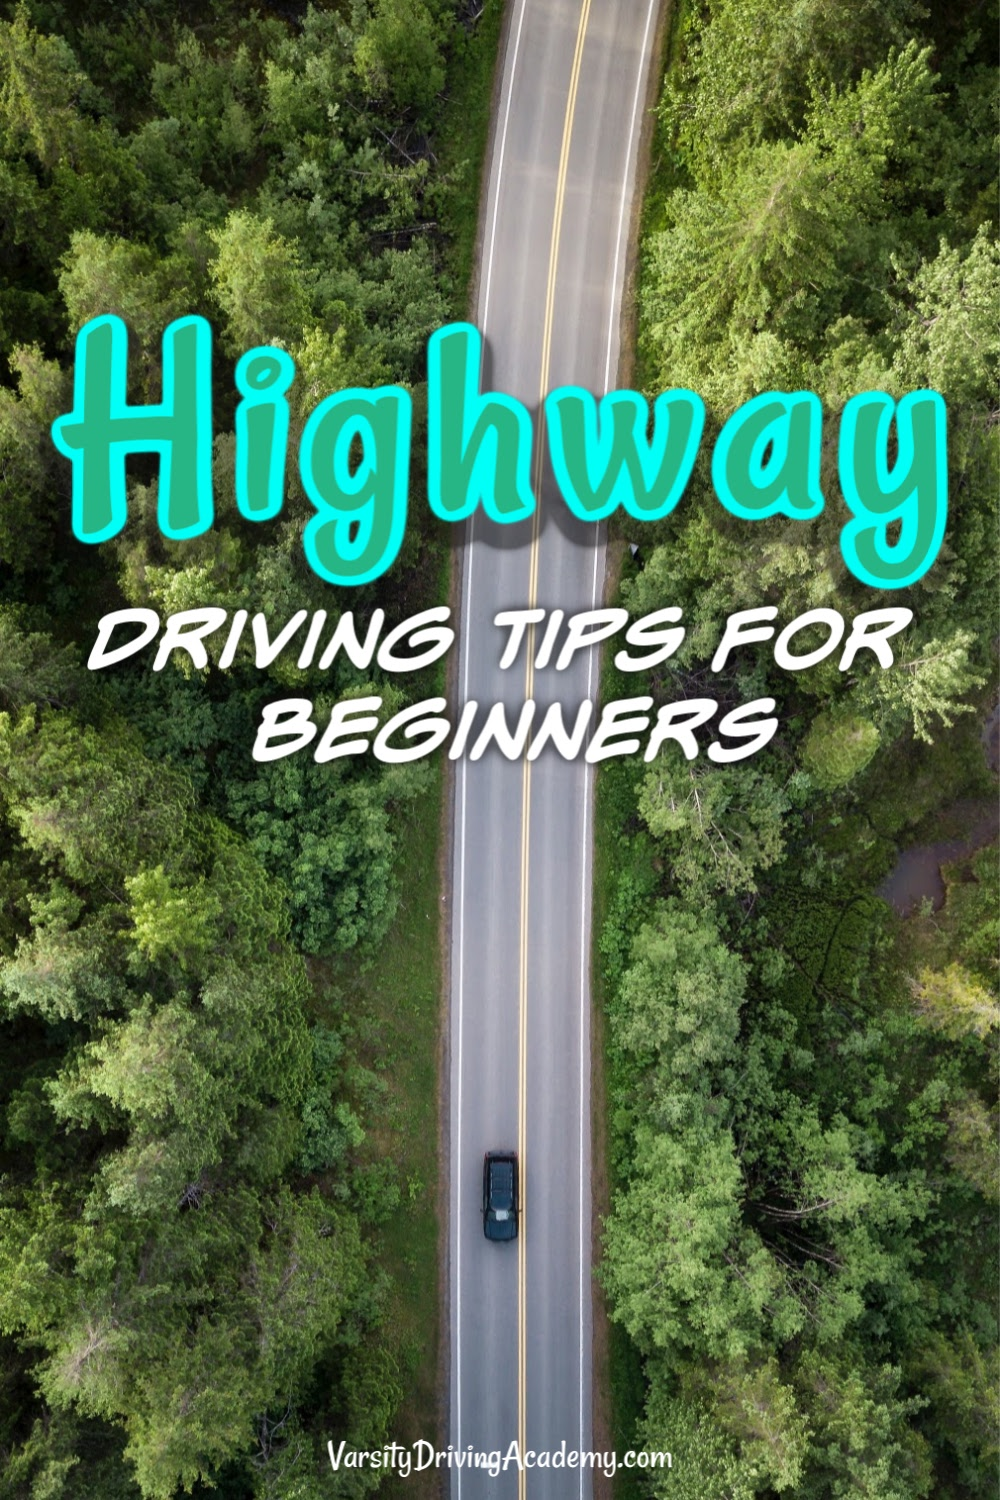 There are some easy highway driving tips for beginners that can make everything less scary and easier to master with practice.